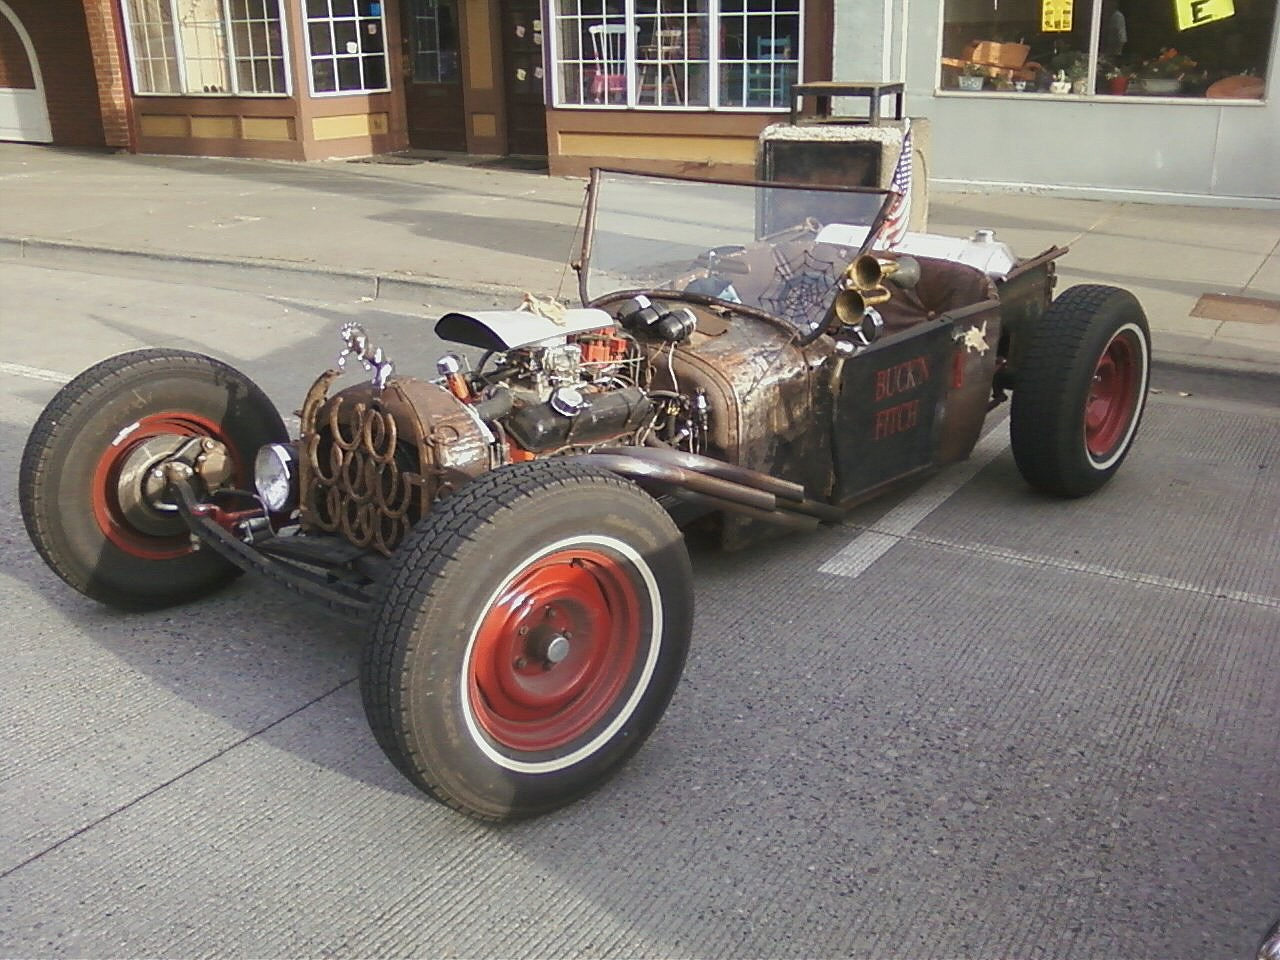 http://97rockonline.com/files/gravity_forms/33/2012/12/2012%20Buckn%20Fitch%20dayton%20car%20show.jpg